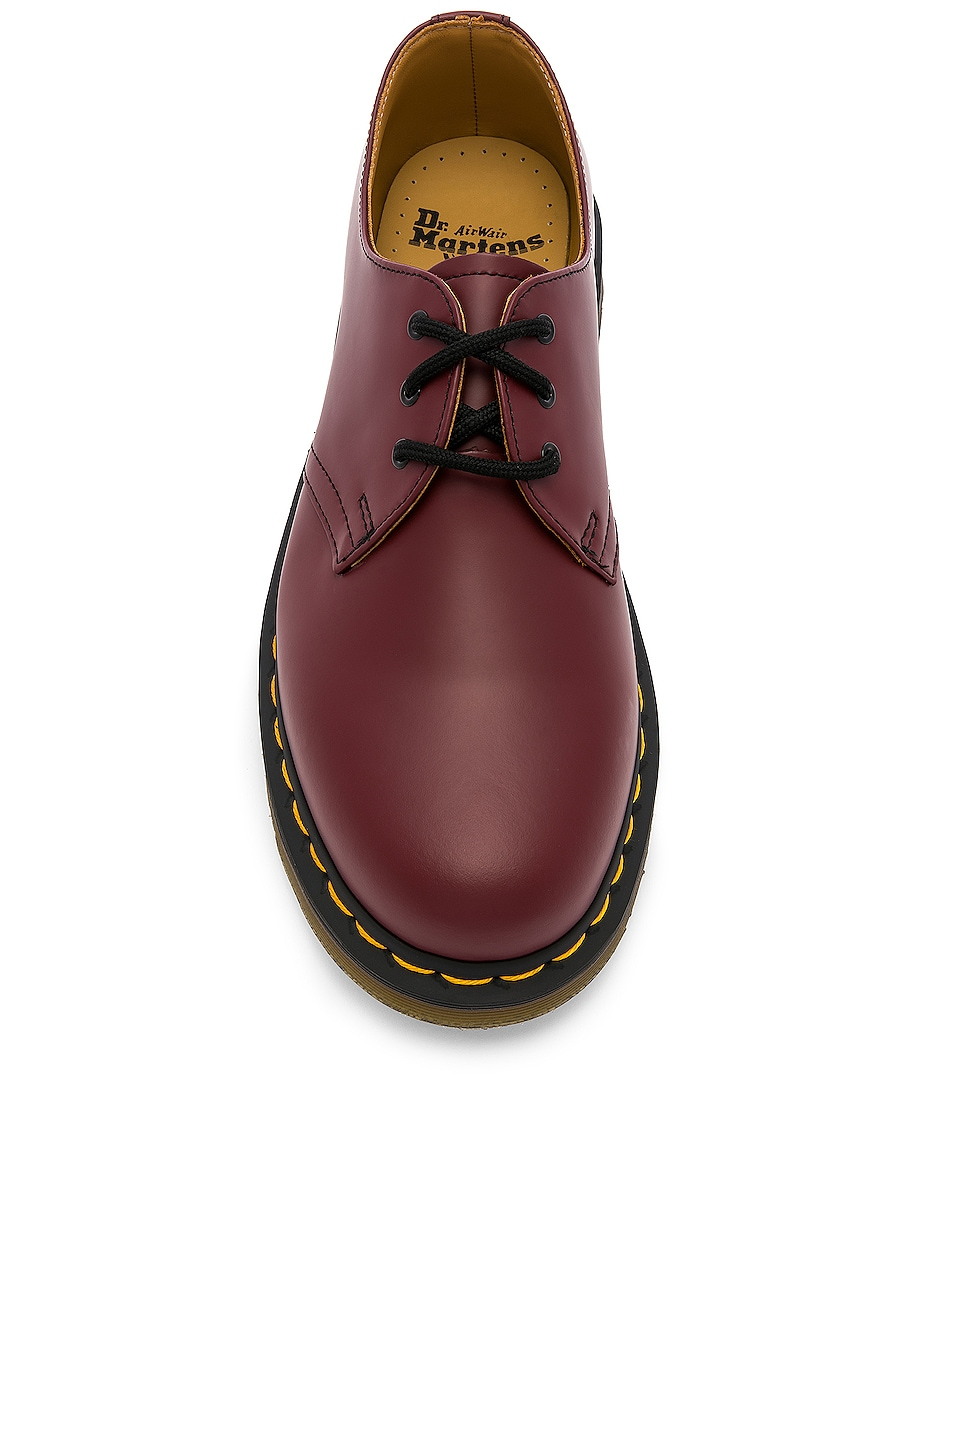 Image 4 of Dr. Martens 1461 3-Eye Shoe in Cherry Red